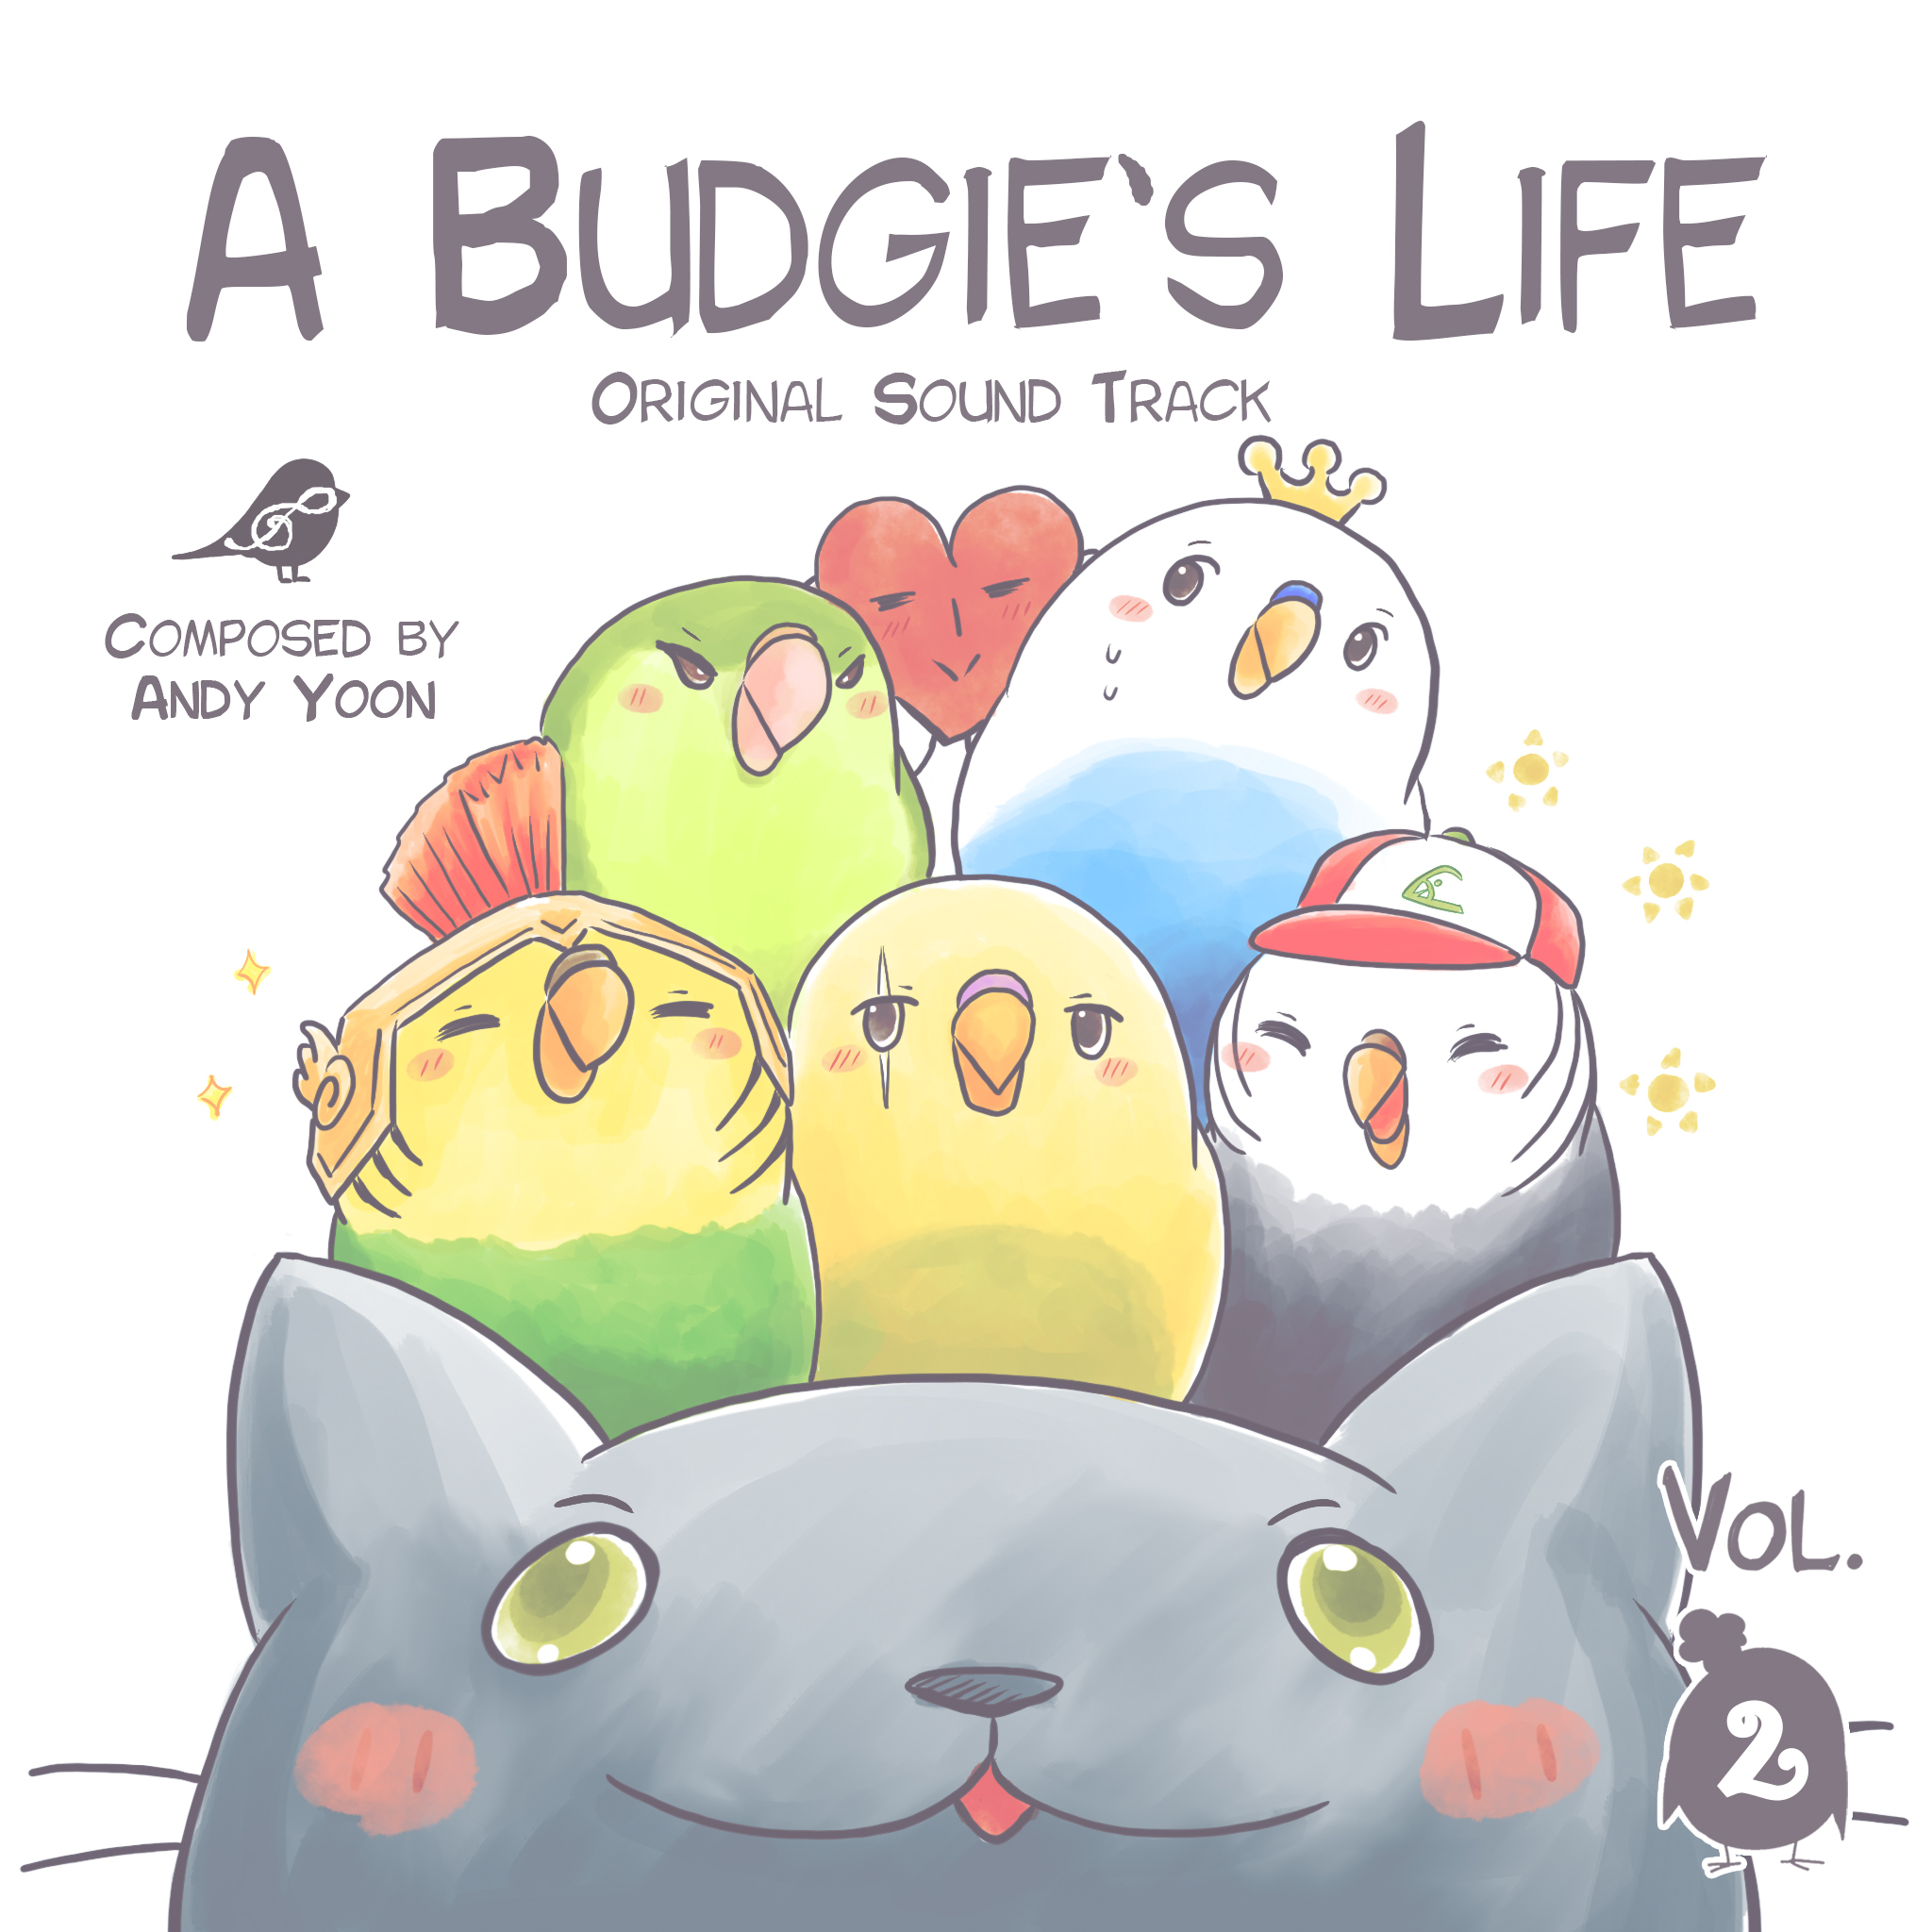 A Budgie's Life Original Soundtrack Vol  2 by - Free download on ToneDen